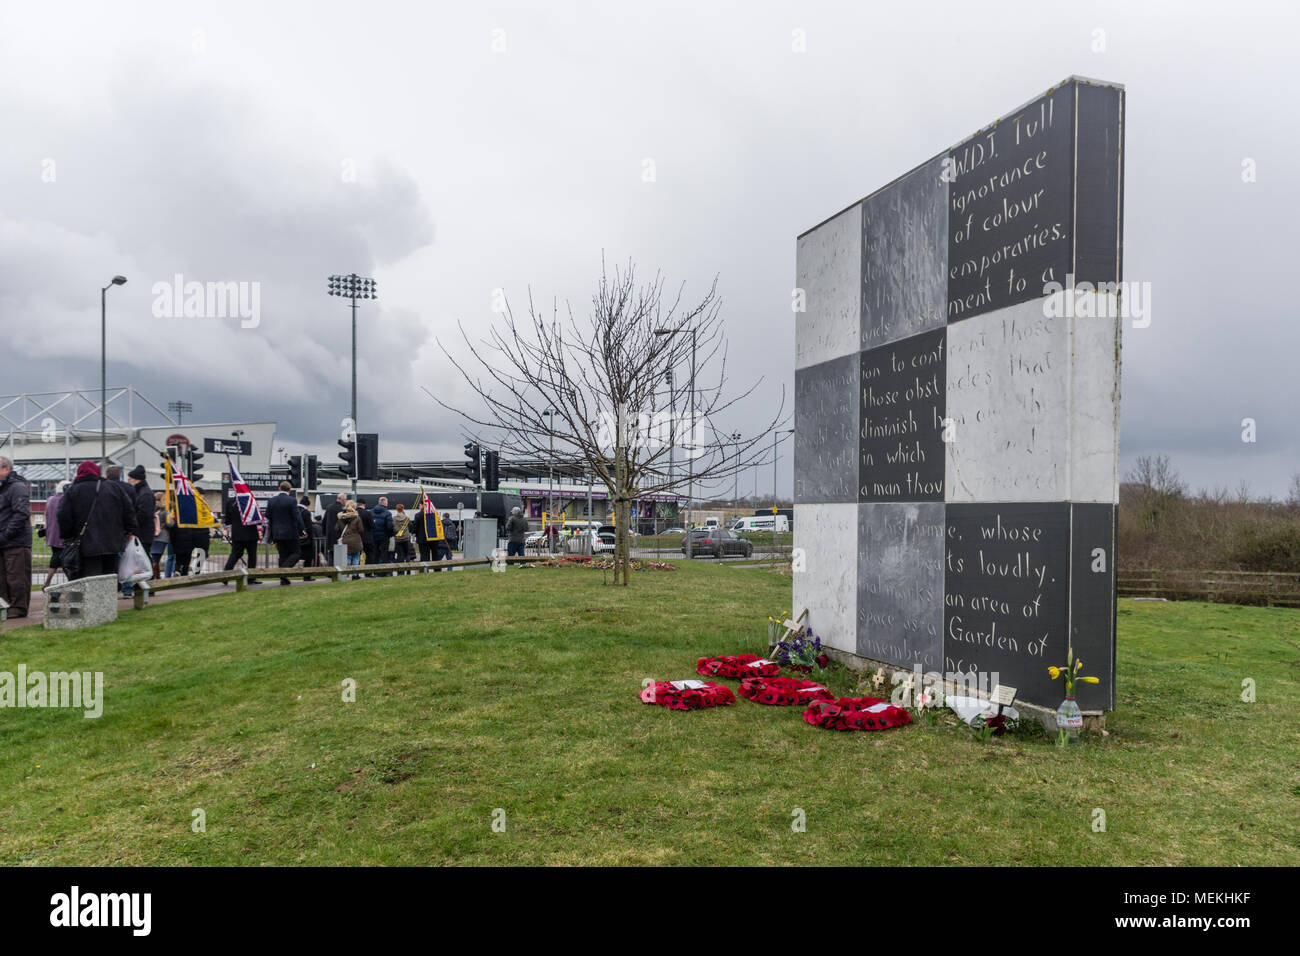 The memorial to Walter Tull, with flowers and wreaths, following a service in his honour; Sixfields, Northampton, UK - Stock Image